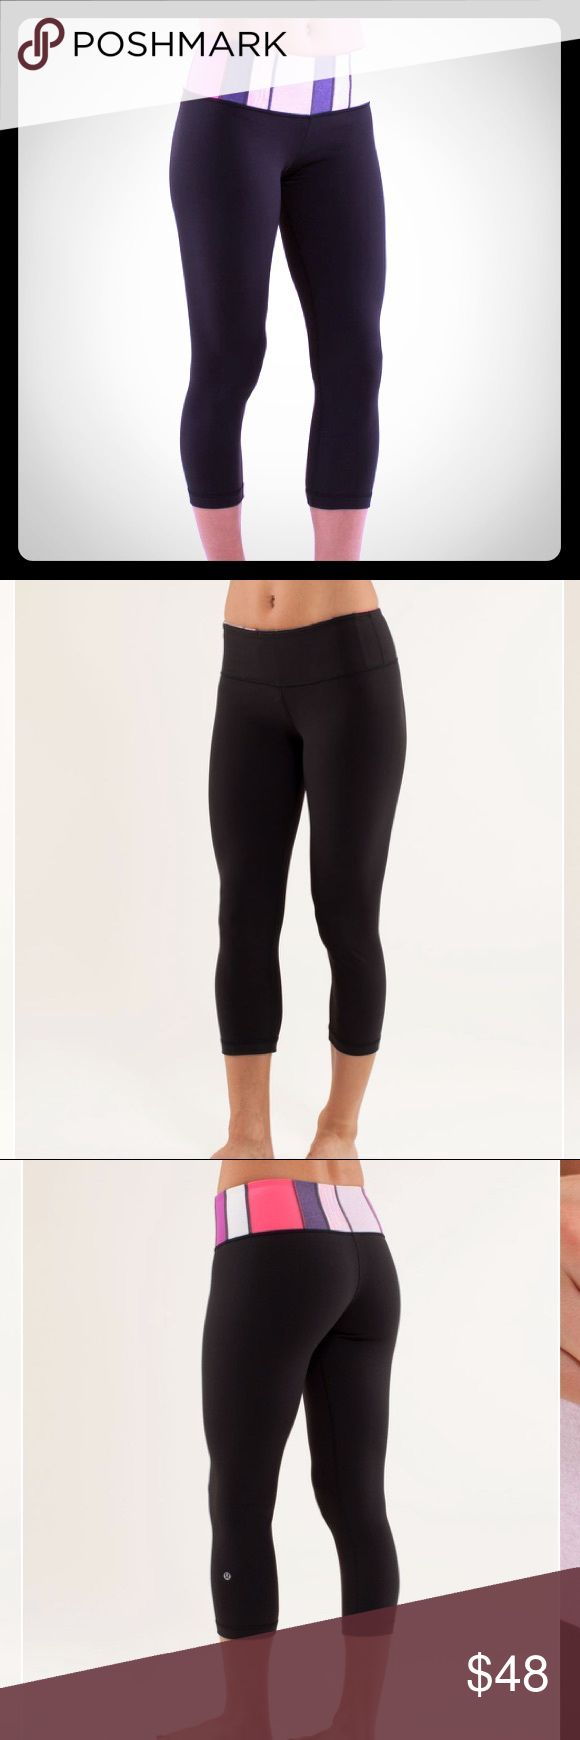 Lululemon Wunder Under Crop: Black/Quilting Spring Coming soon!! VGUC Lululemon Wunder Under Crop. Quilting spring 10/Black reverses to solid black. Moisture-wicking luon fabric. Key pocket in waistband. Gently used condition. First four photos are stock photos to demonstrate fit and style. lululemon athletica Pants Ankle & Cropped